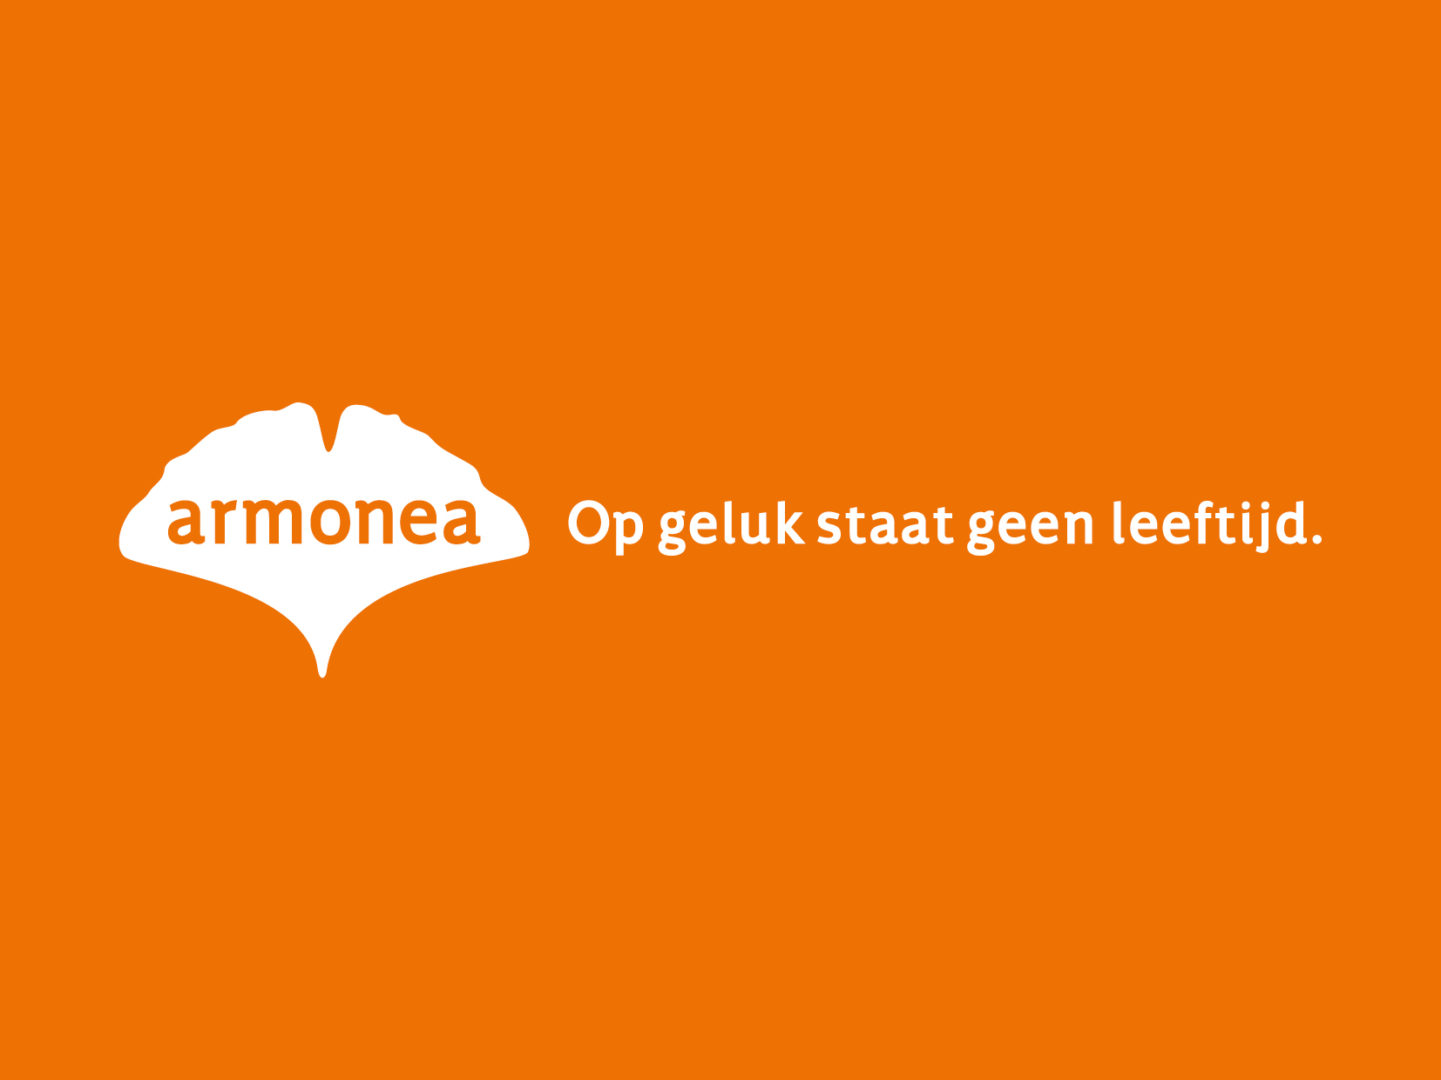 Armonea logo and tagline